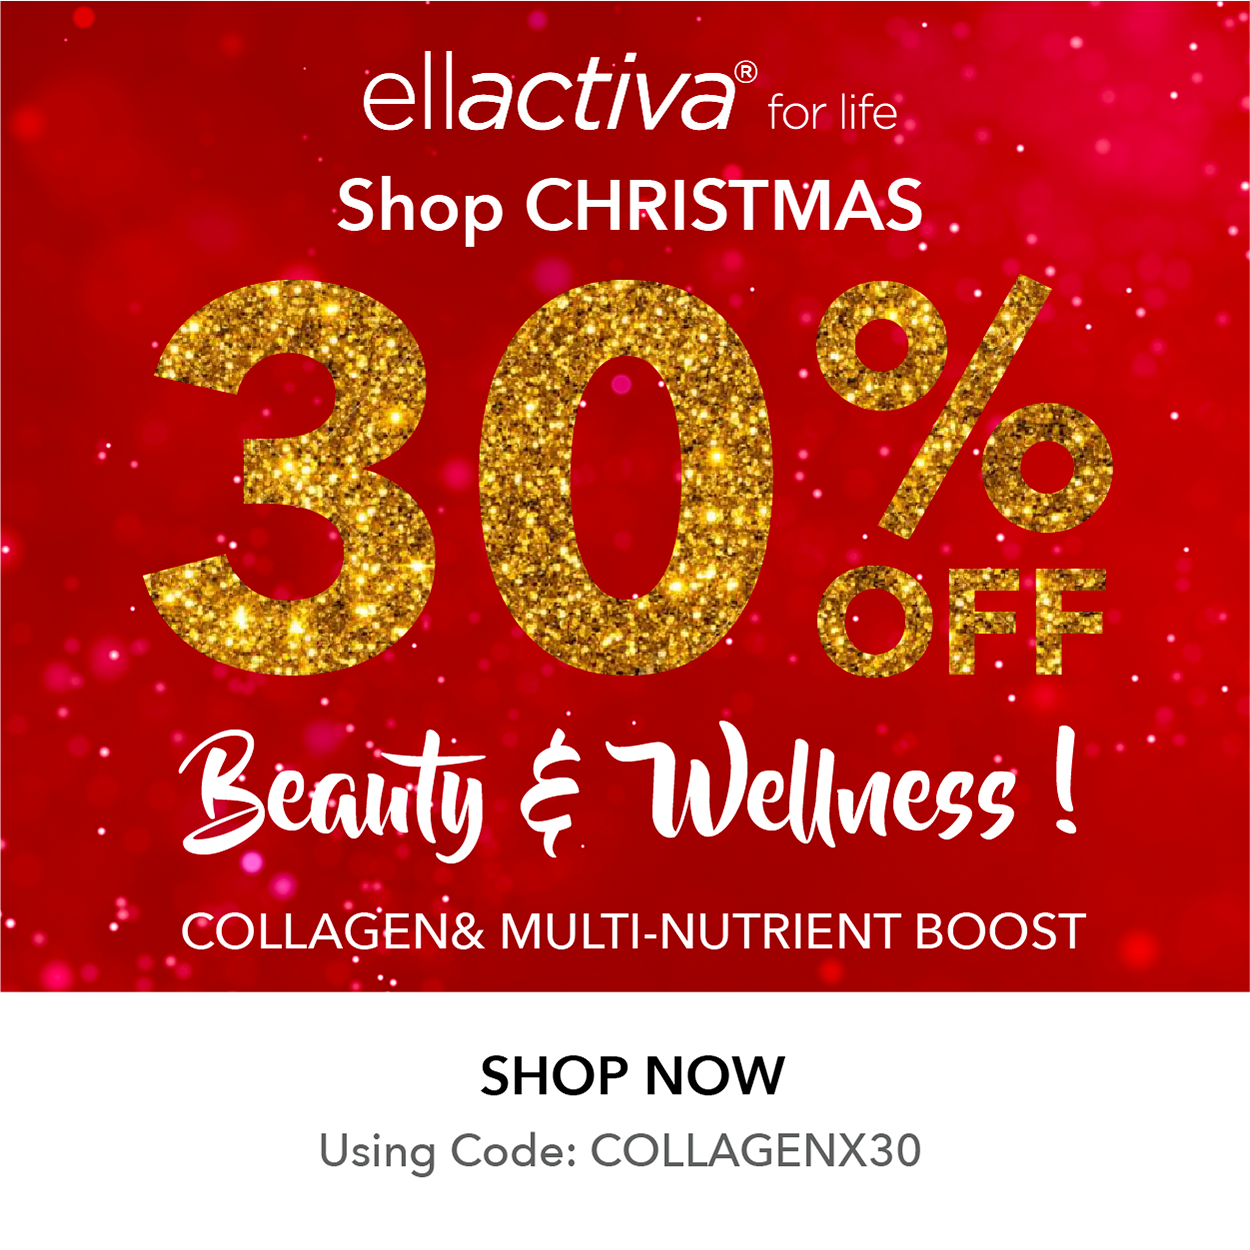 Read GRAB 30% OFF OUR COLLAGEN& RANGE & GIVE YOURSELF A BEAUTY & WELLNESS BOOST IN TIME FOR CHRISTMAS!